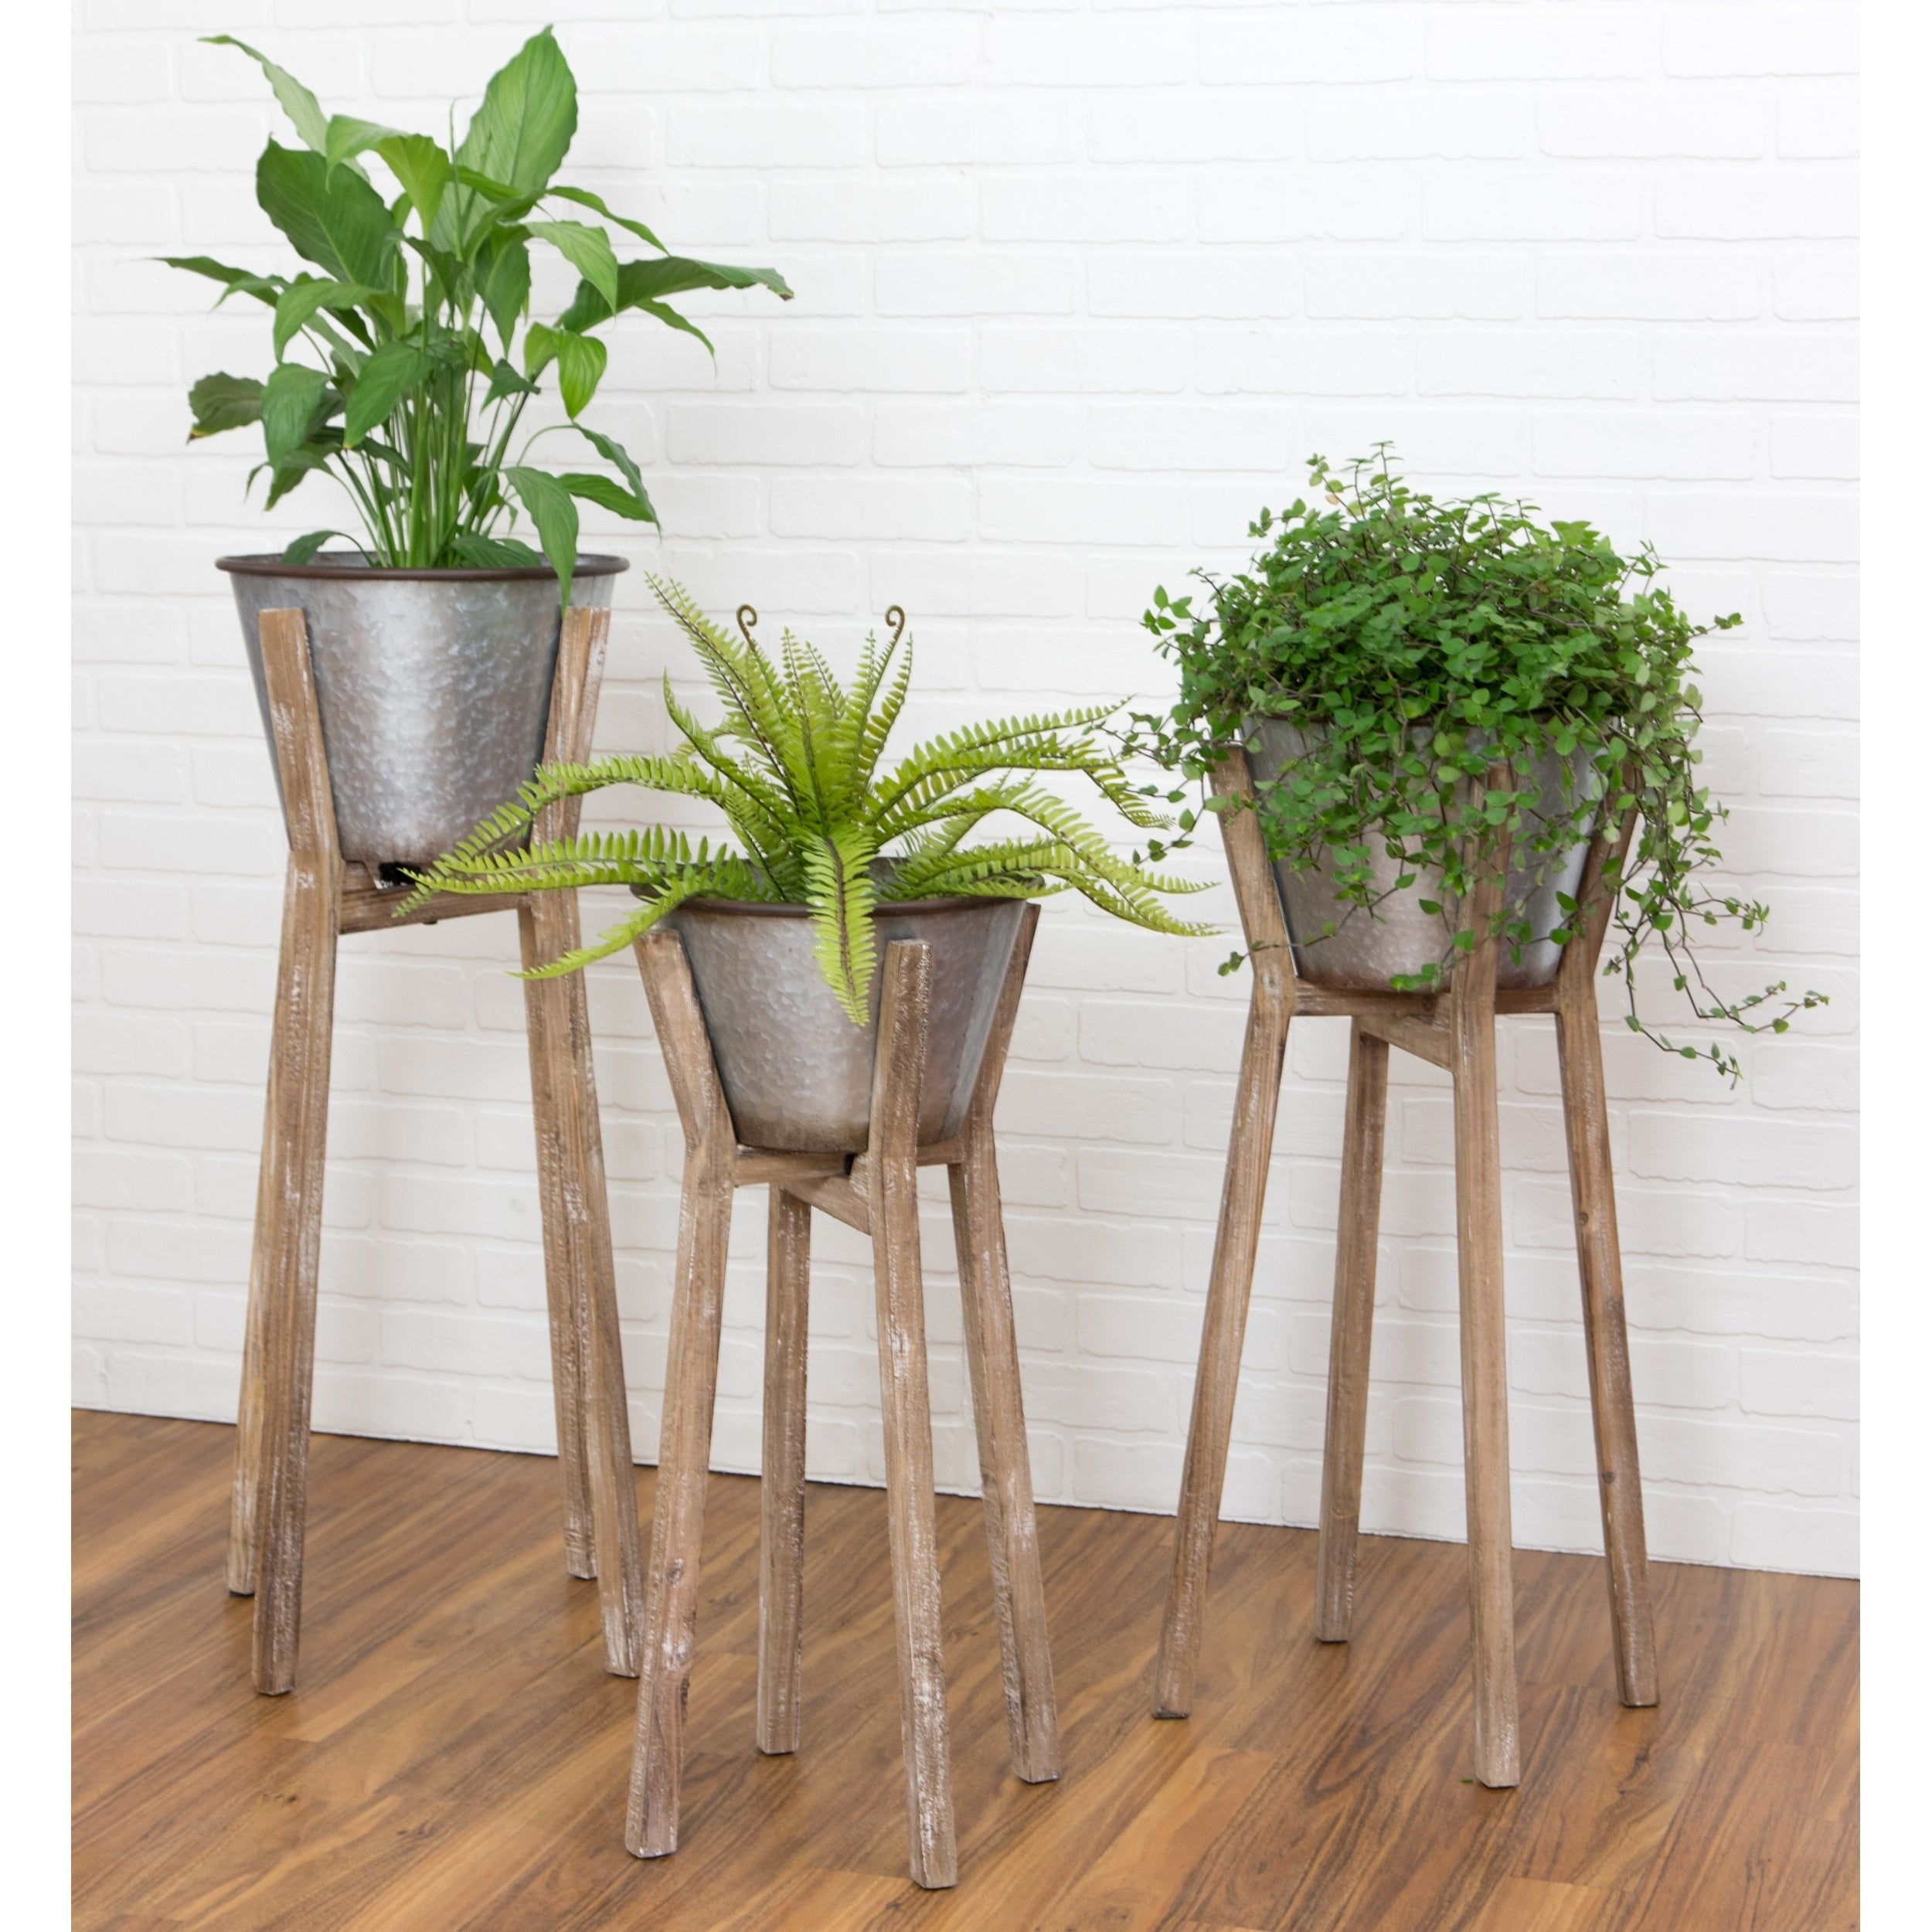 Buy Planters Plant Stands Online At Overstock Our Best